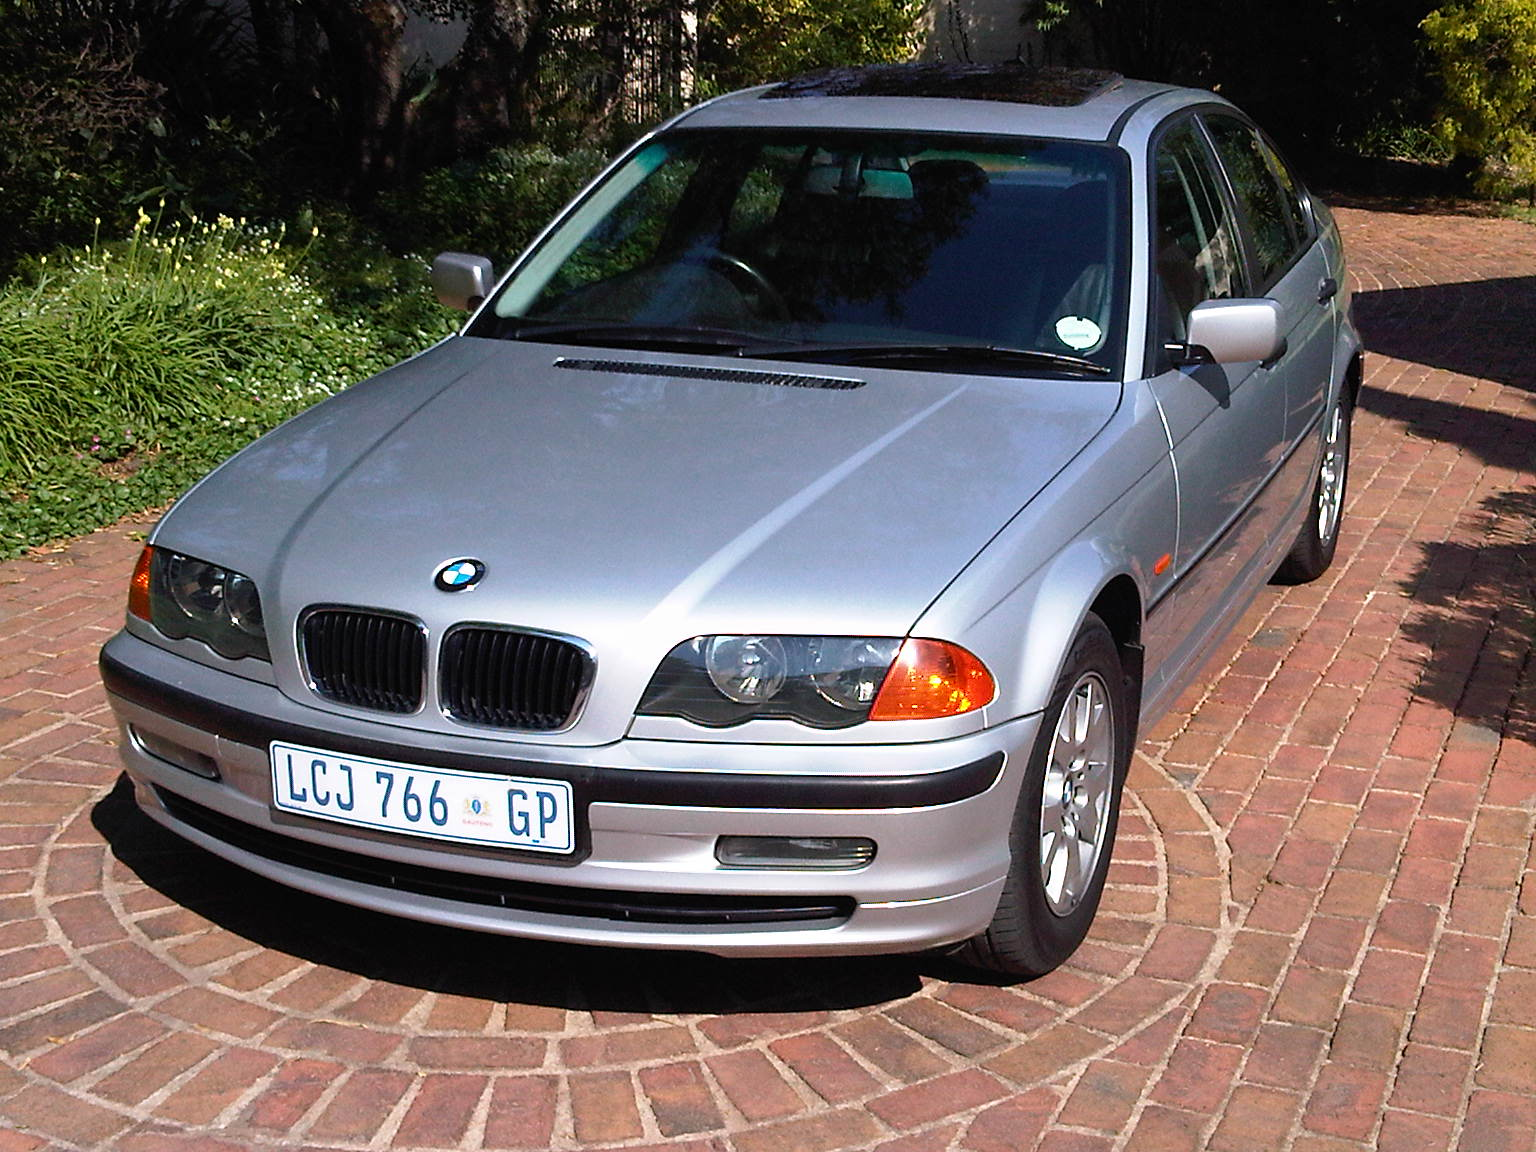 BMW 3 series 330xi 2000 photo - 3